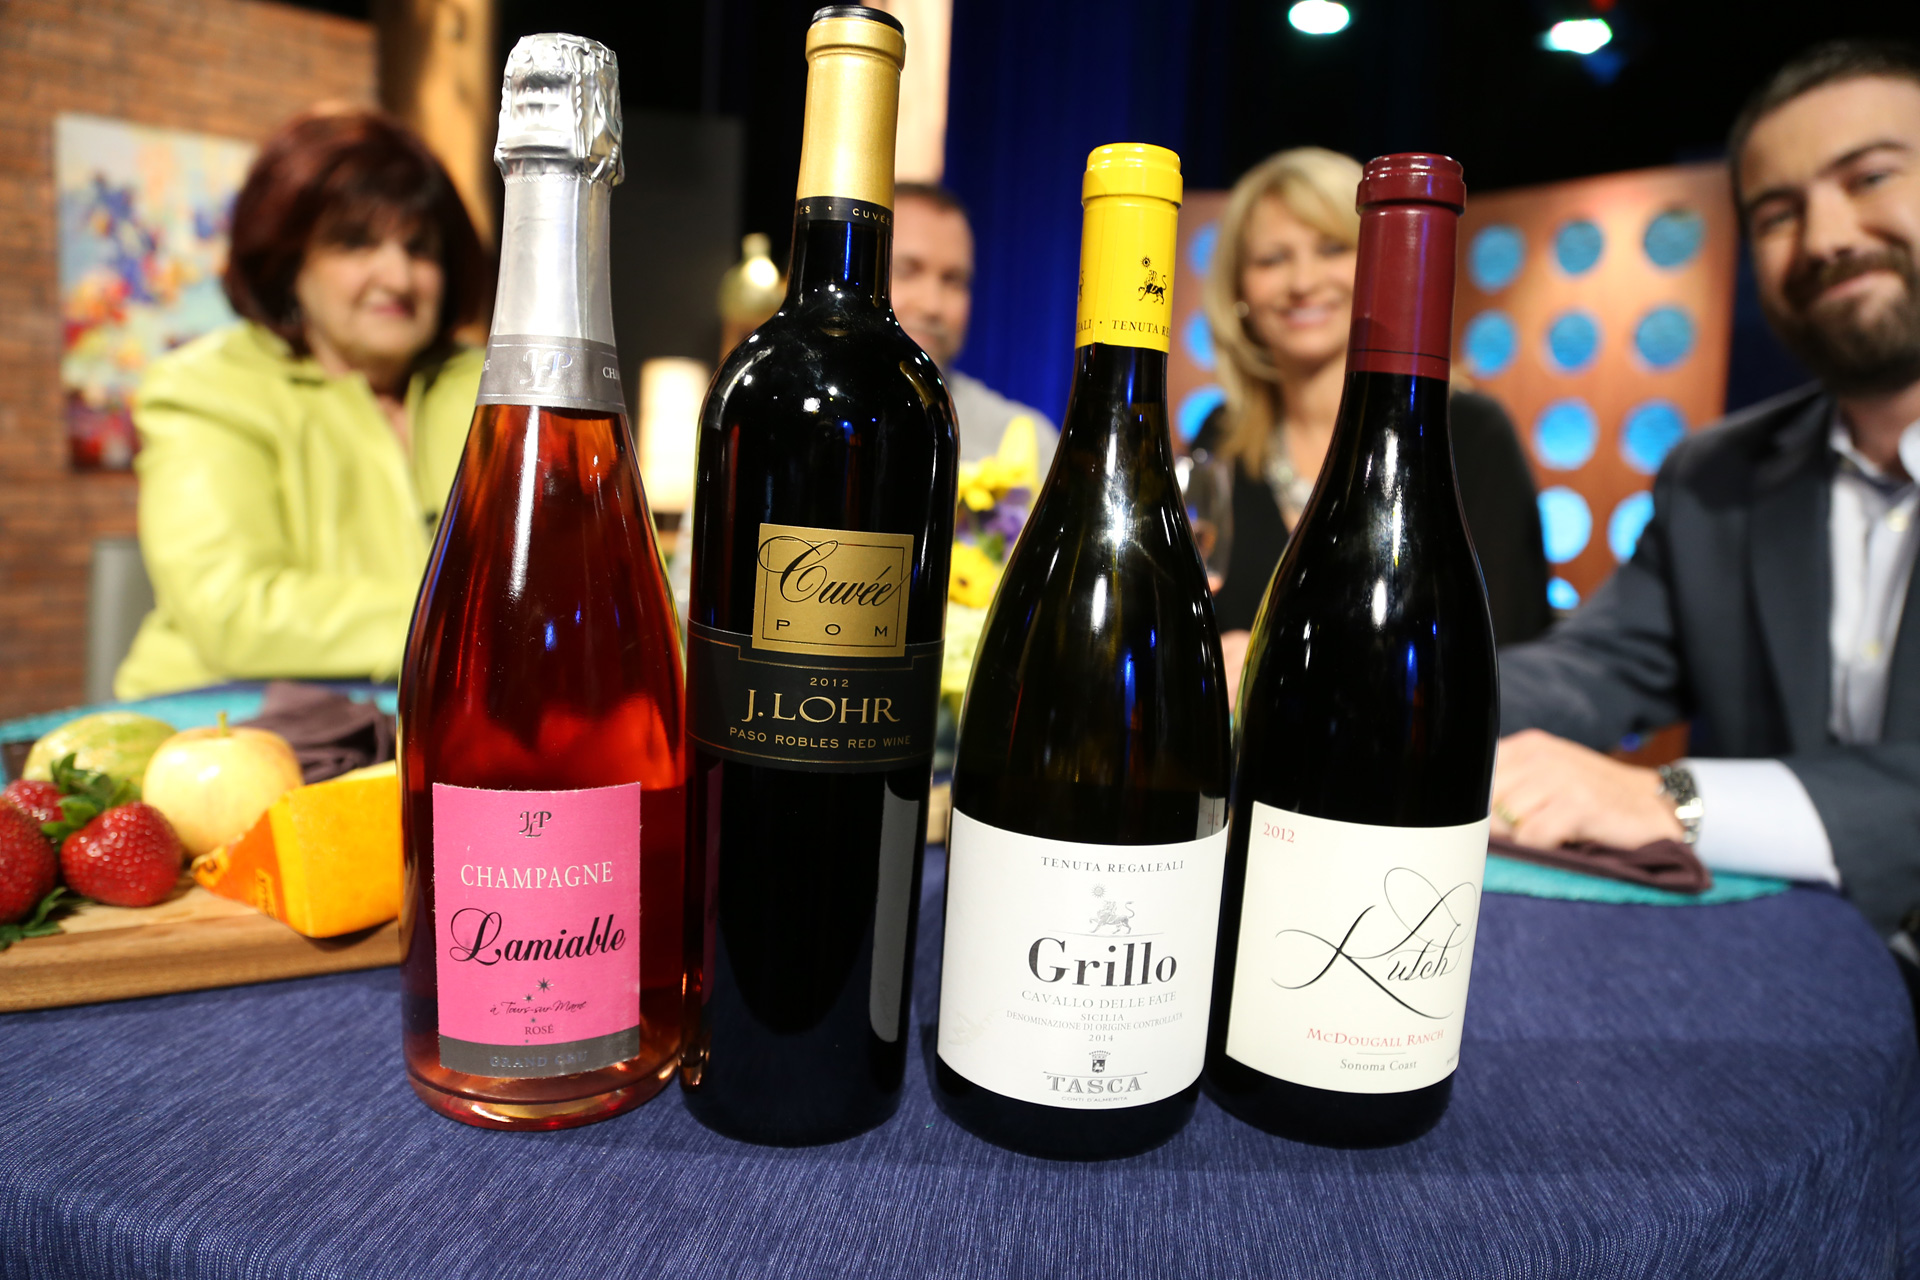 Wines that guests drank on the set of the sixteenth episode of season 11.